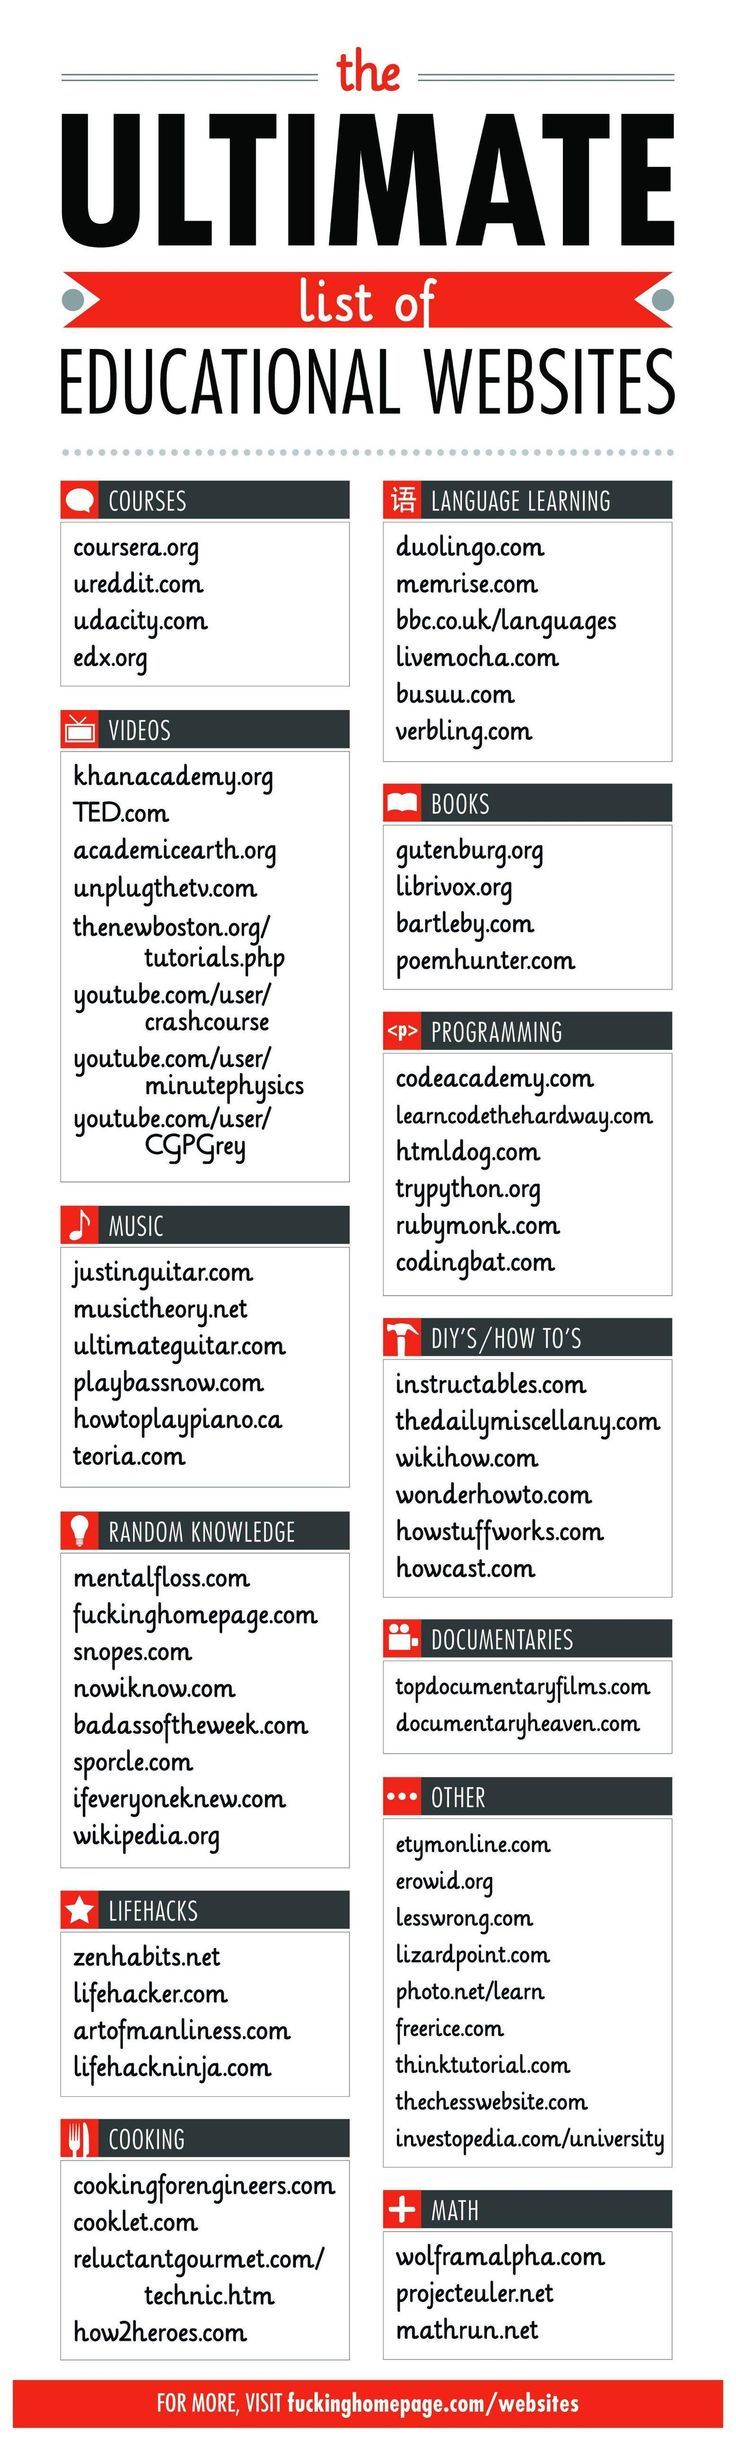 websites... The Ultimate #edtech list!!!